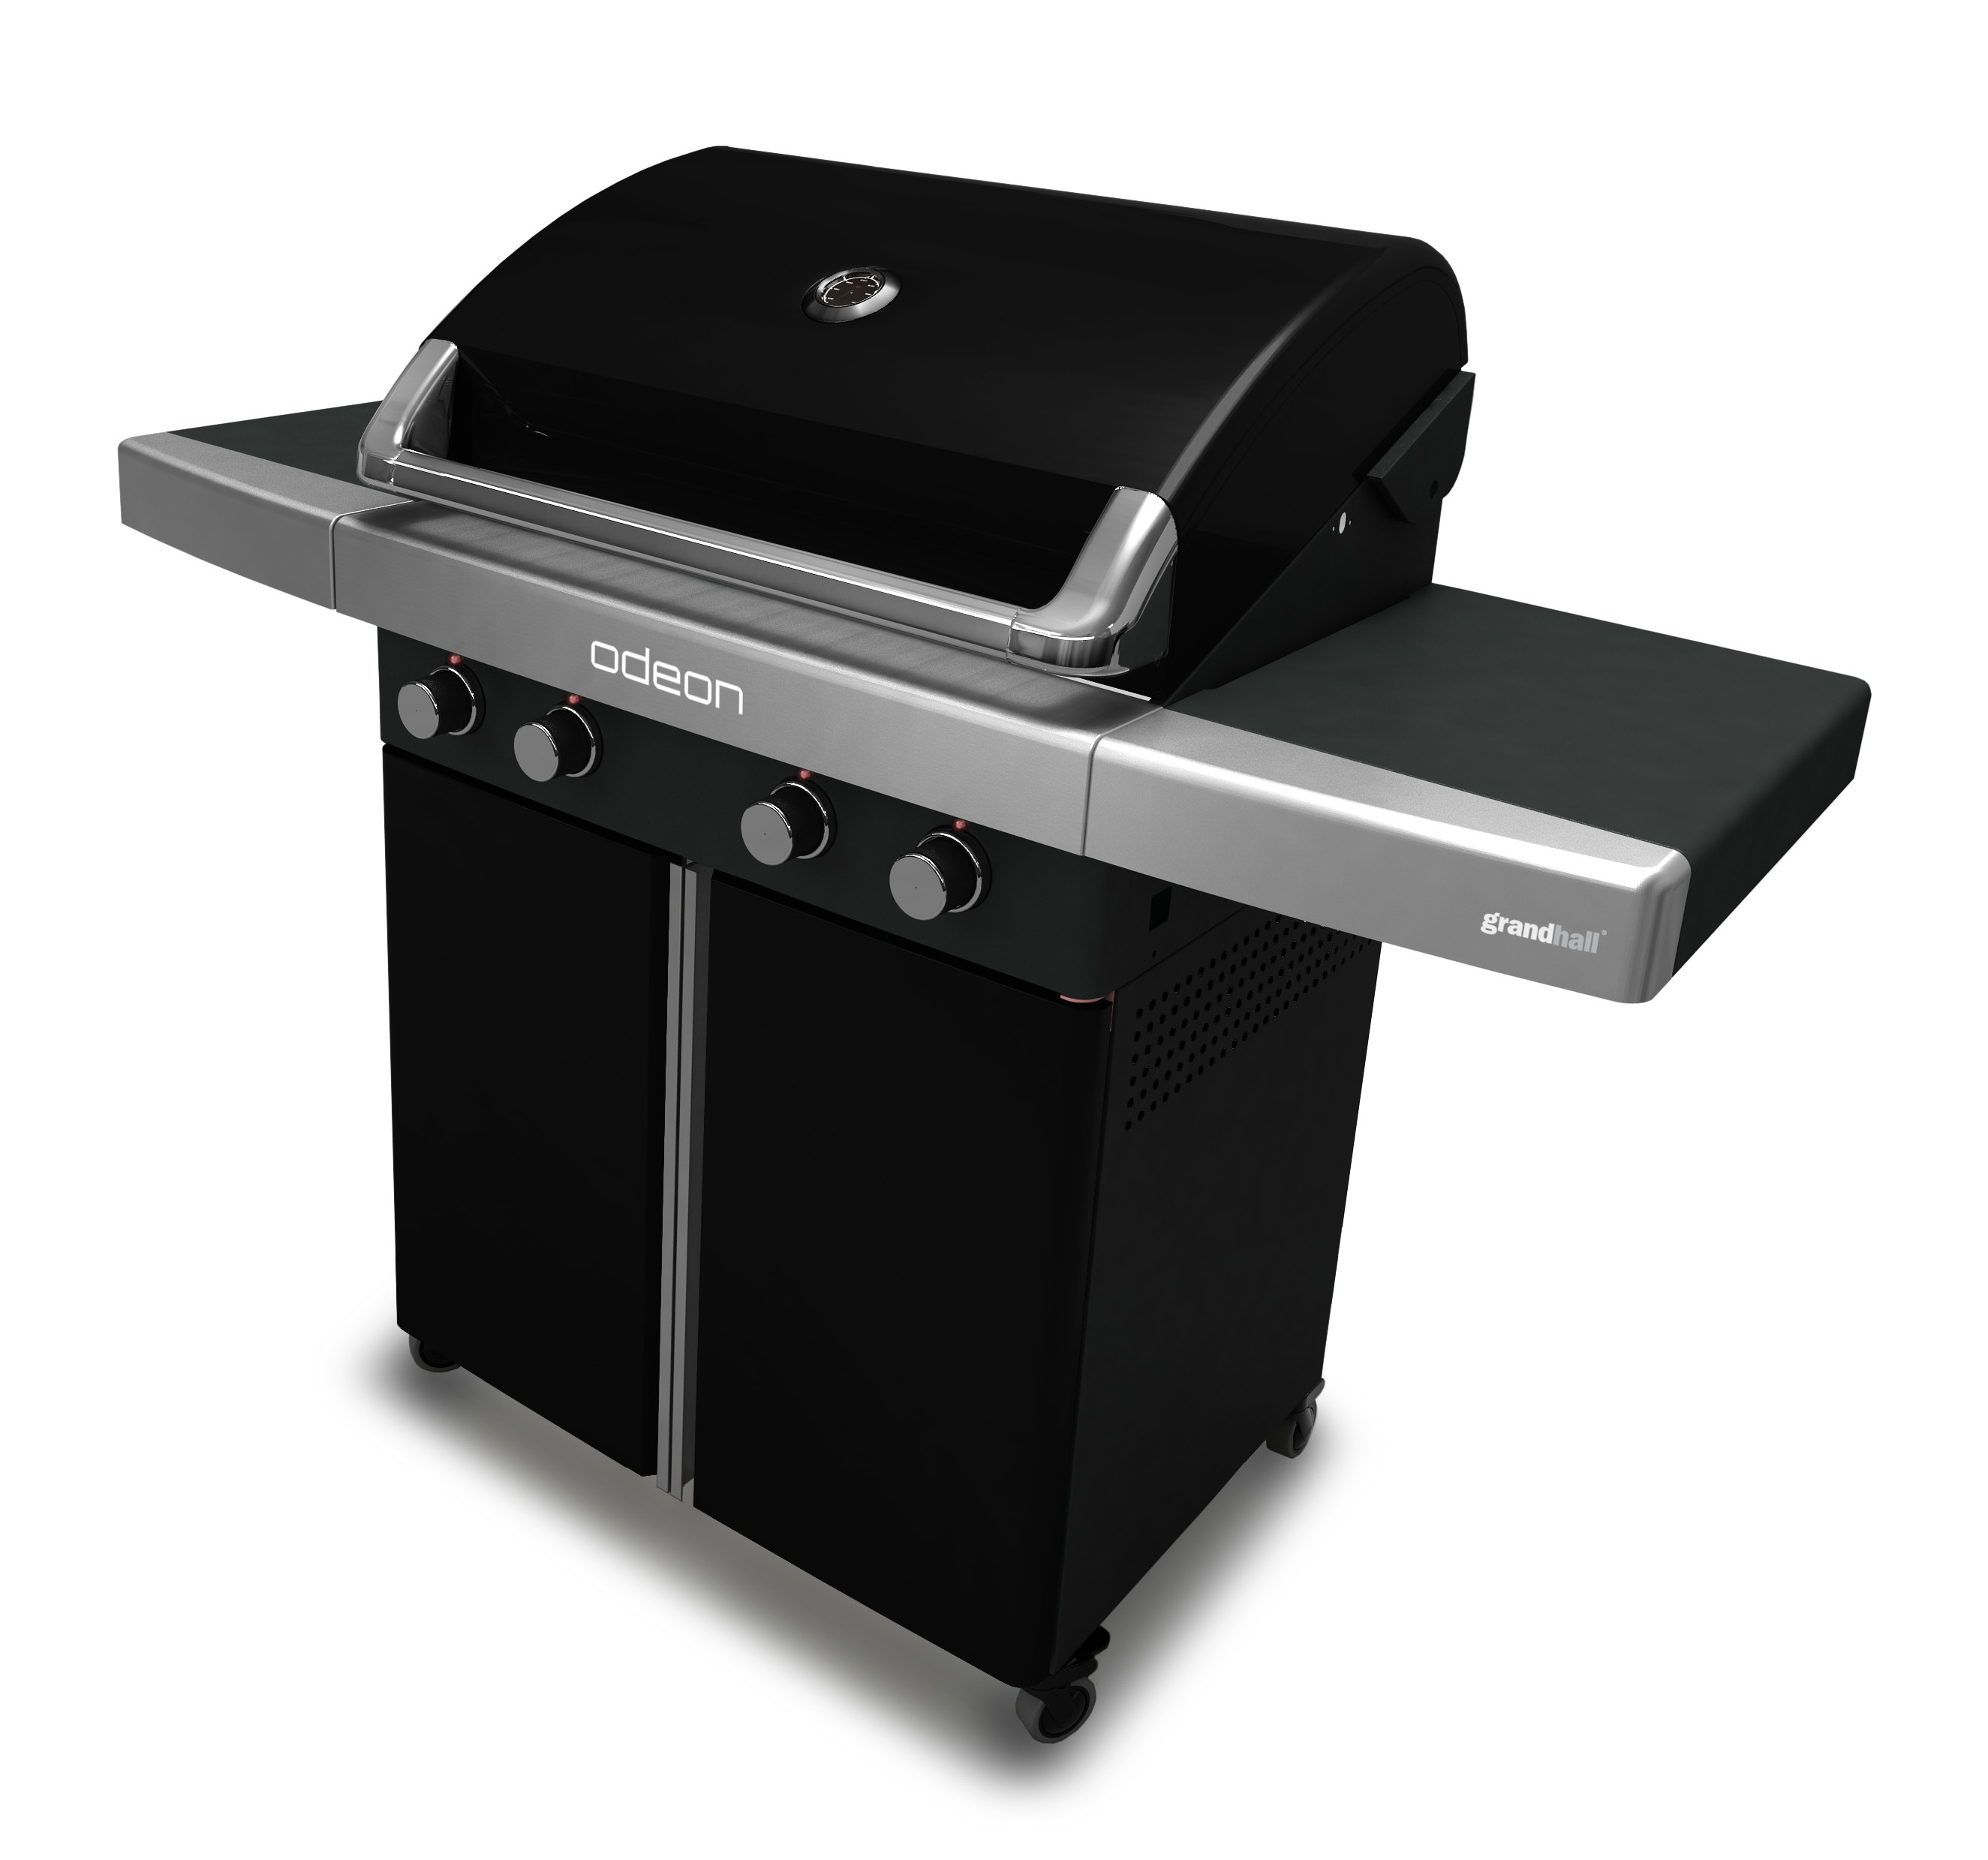 Odeon 32 Grill Black - The Barbecue Store Spain